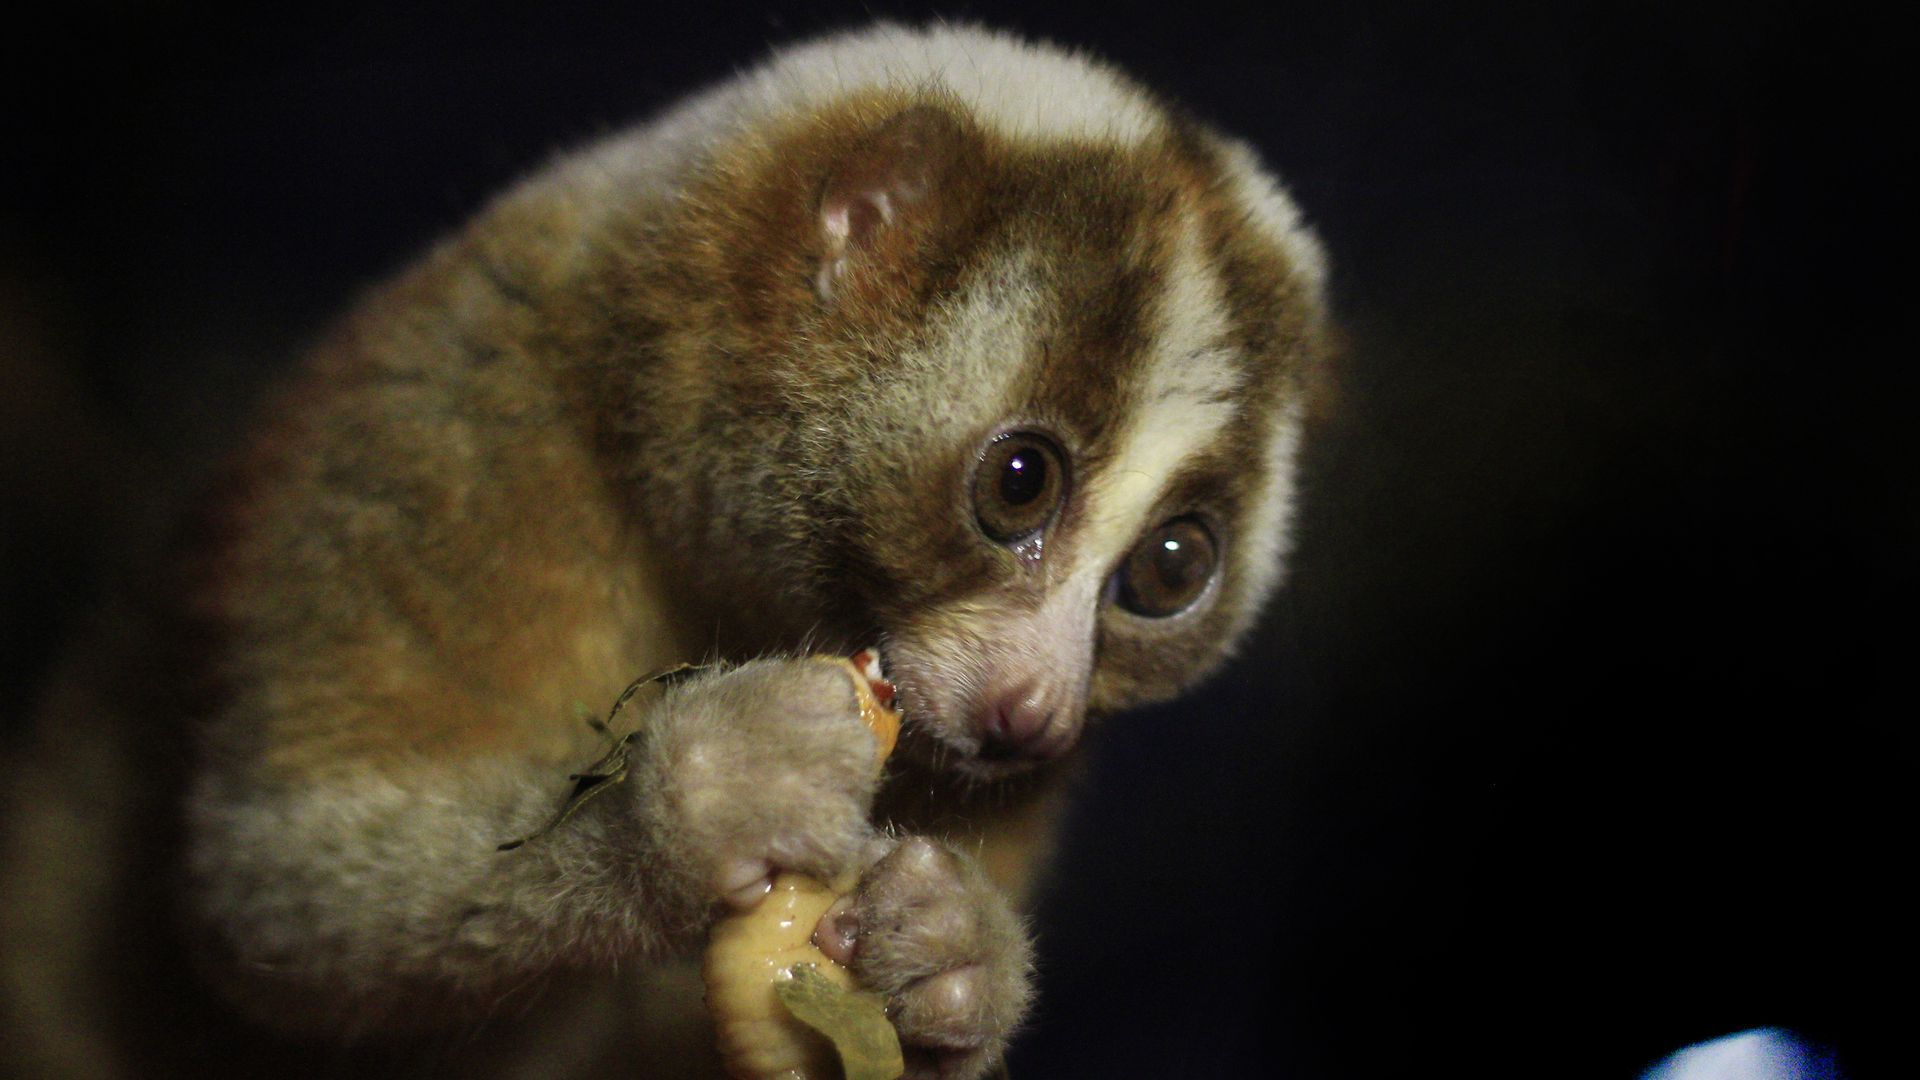 The start-up gets its name from this sloth-like animal, the Loris